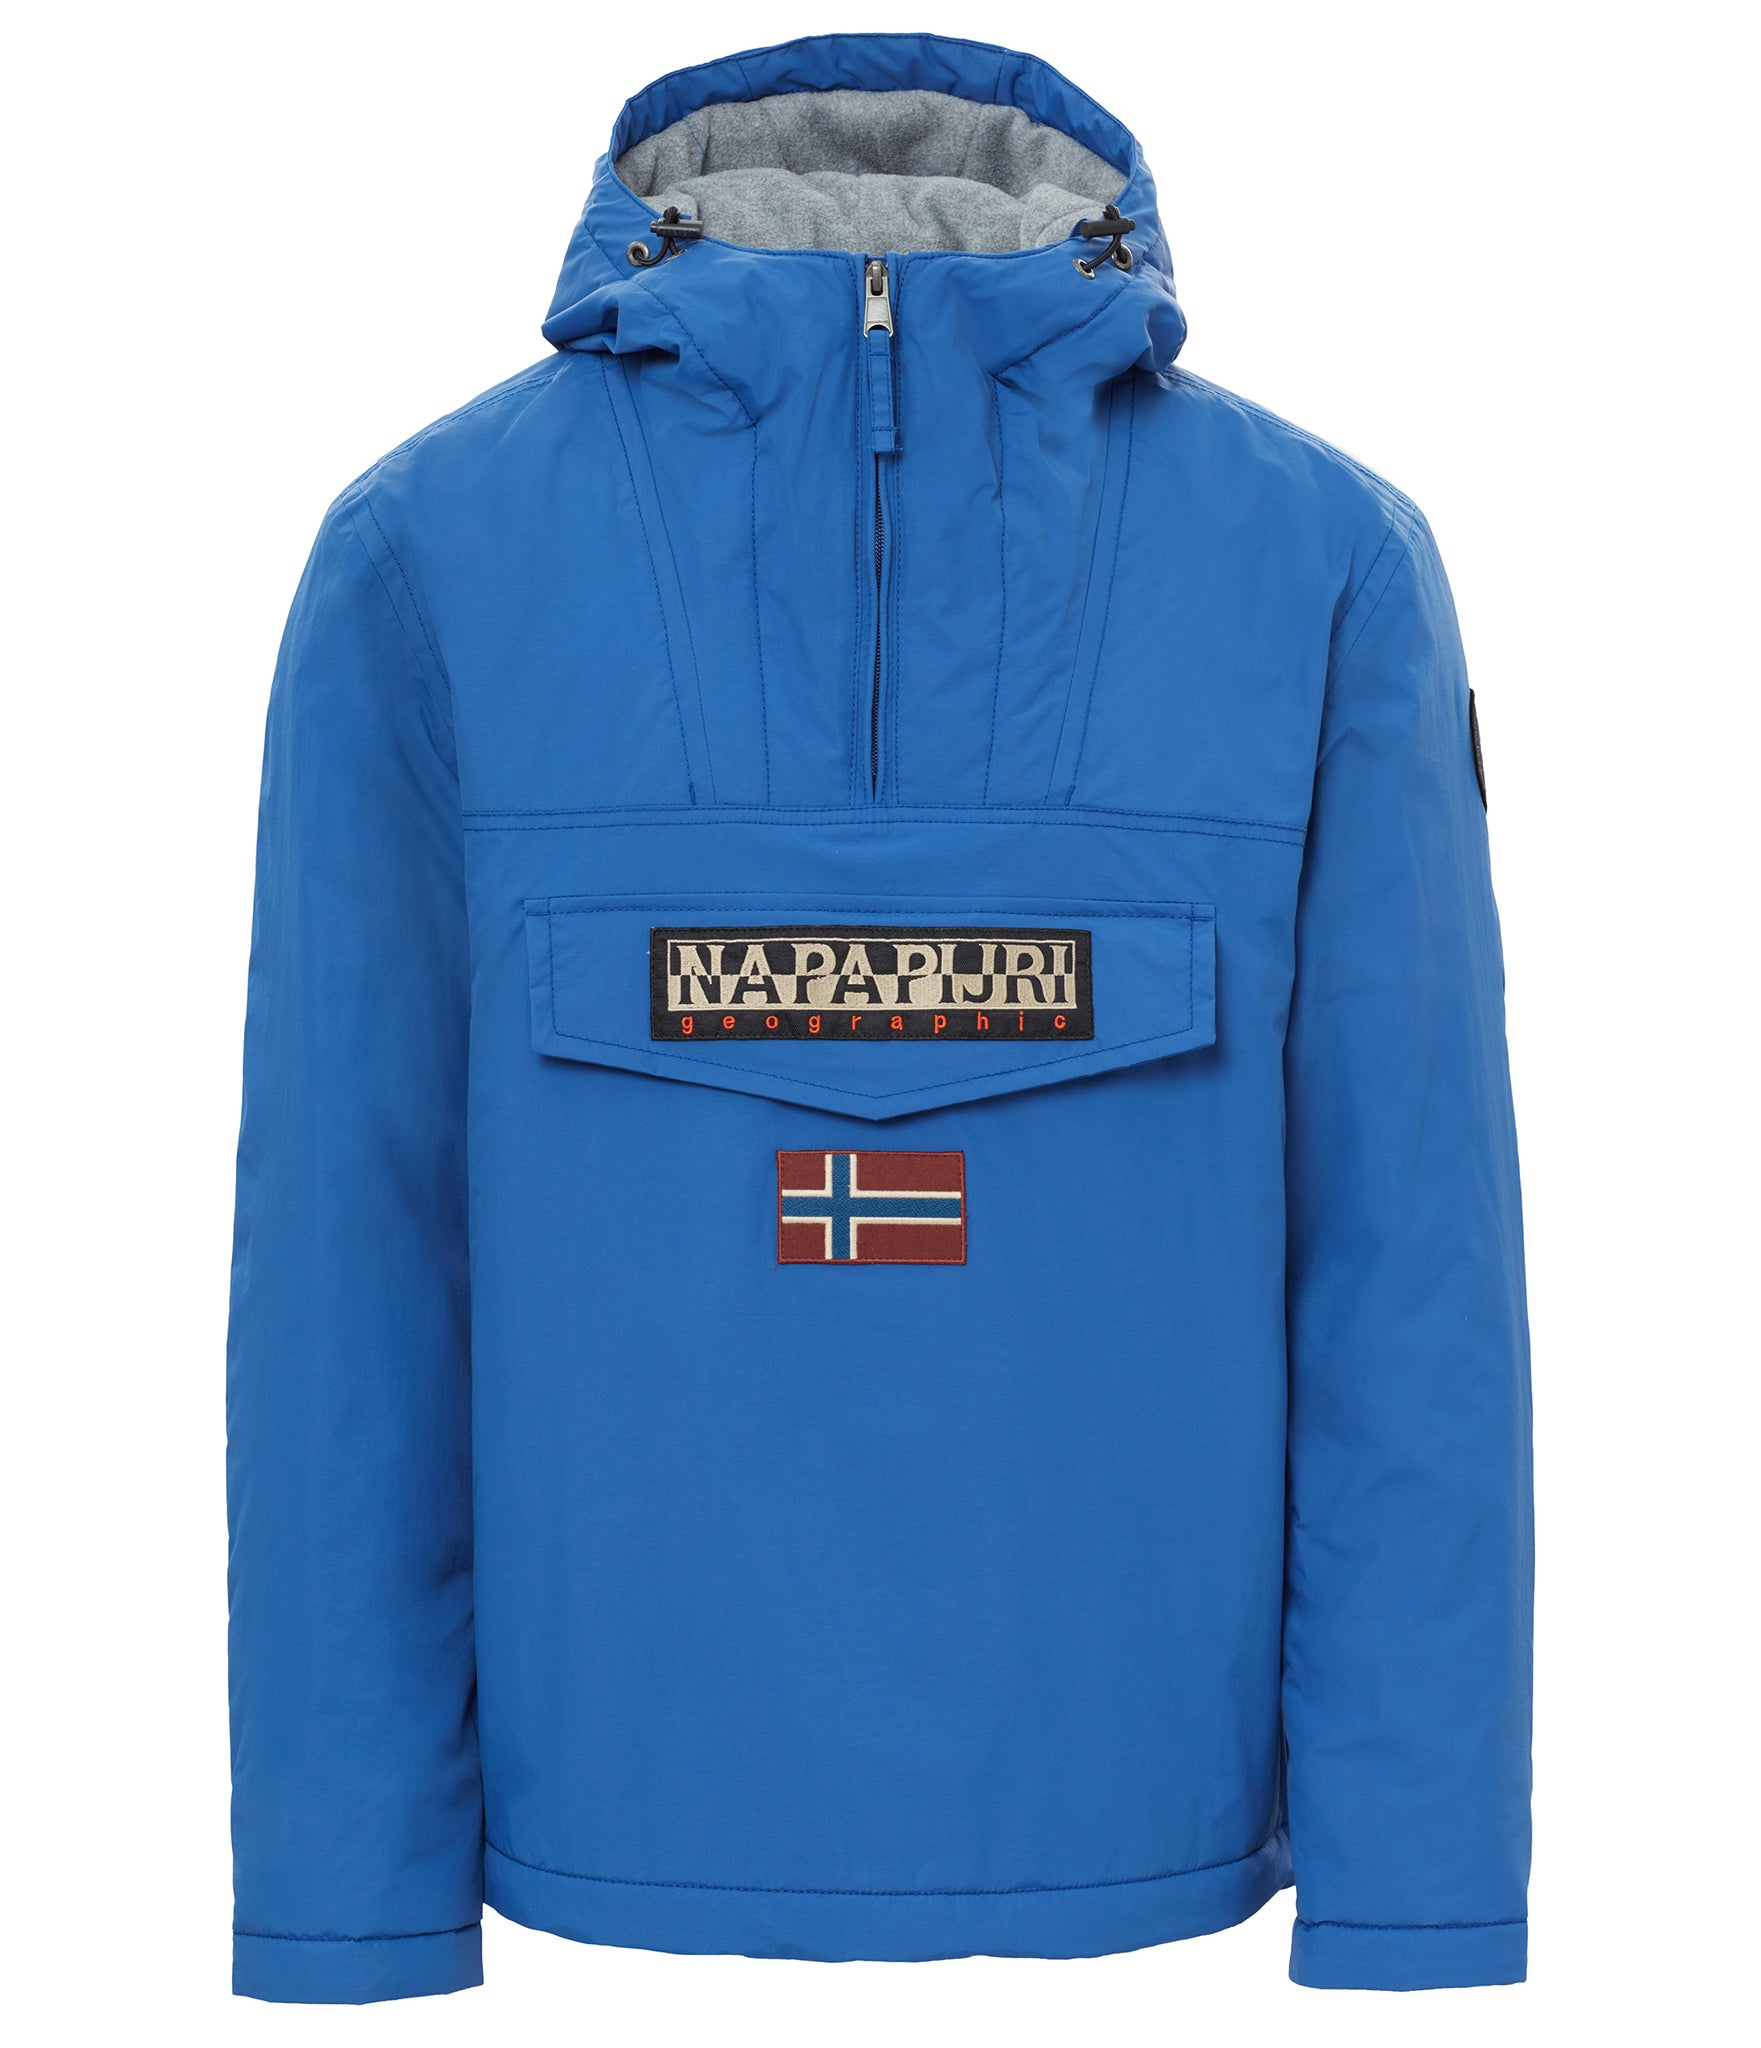 Napapijri M-Rainforest Winter Jacket FW18 - Valbruna Vail 93213369082